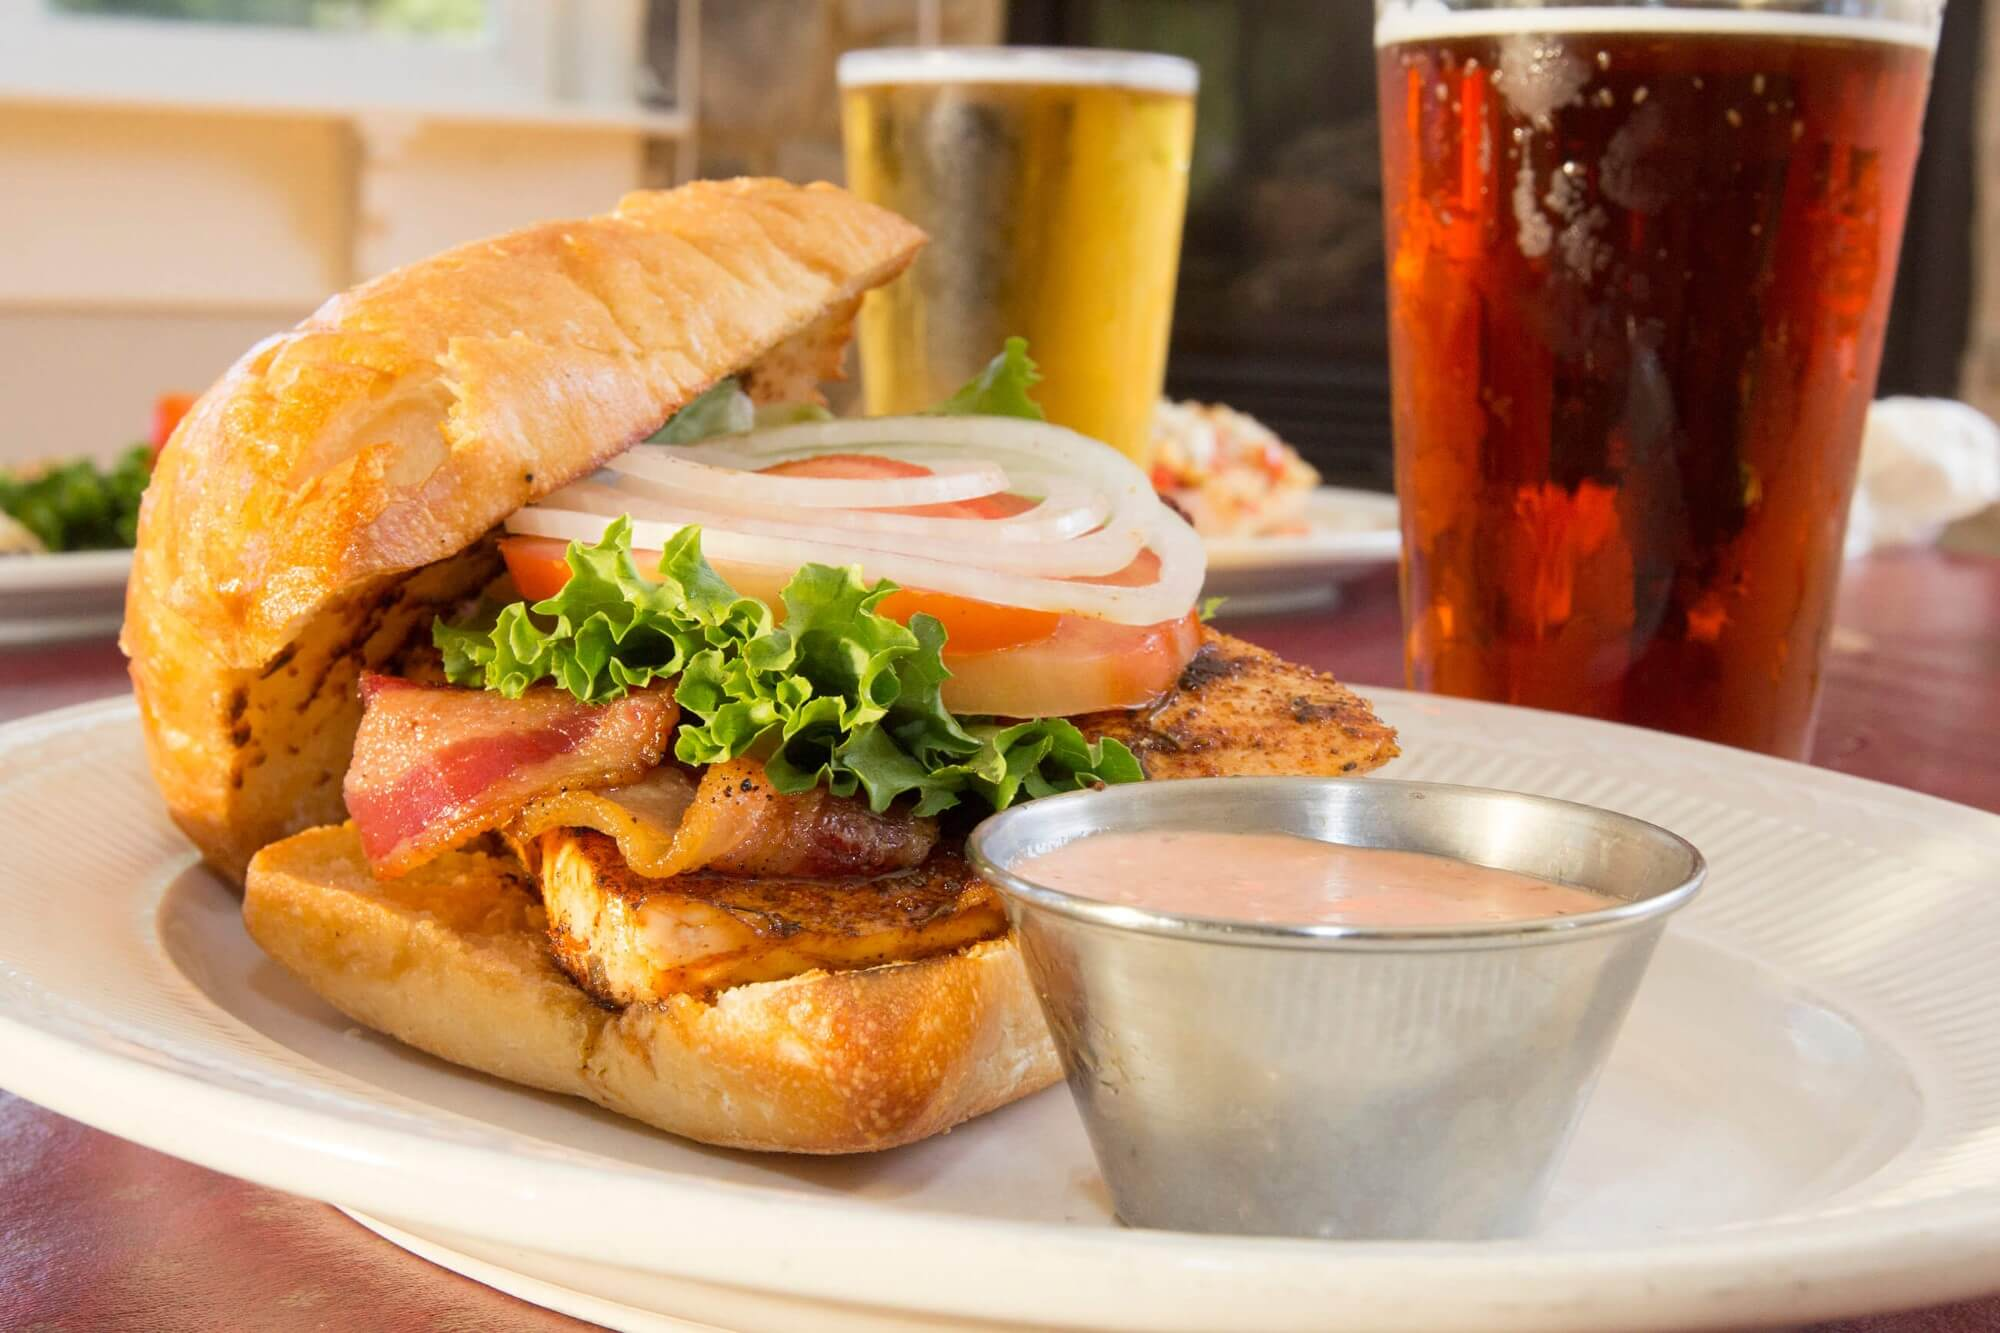 Adam's Taphouse and Grille Prince Frederick fillet bacon on ciabatta sauce and pints of beer